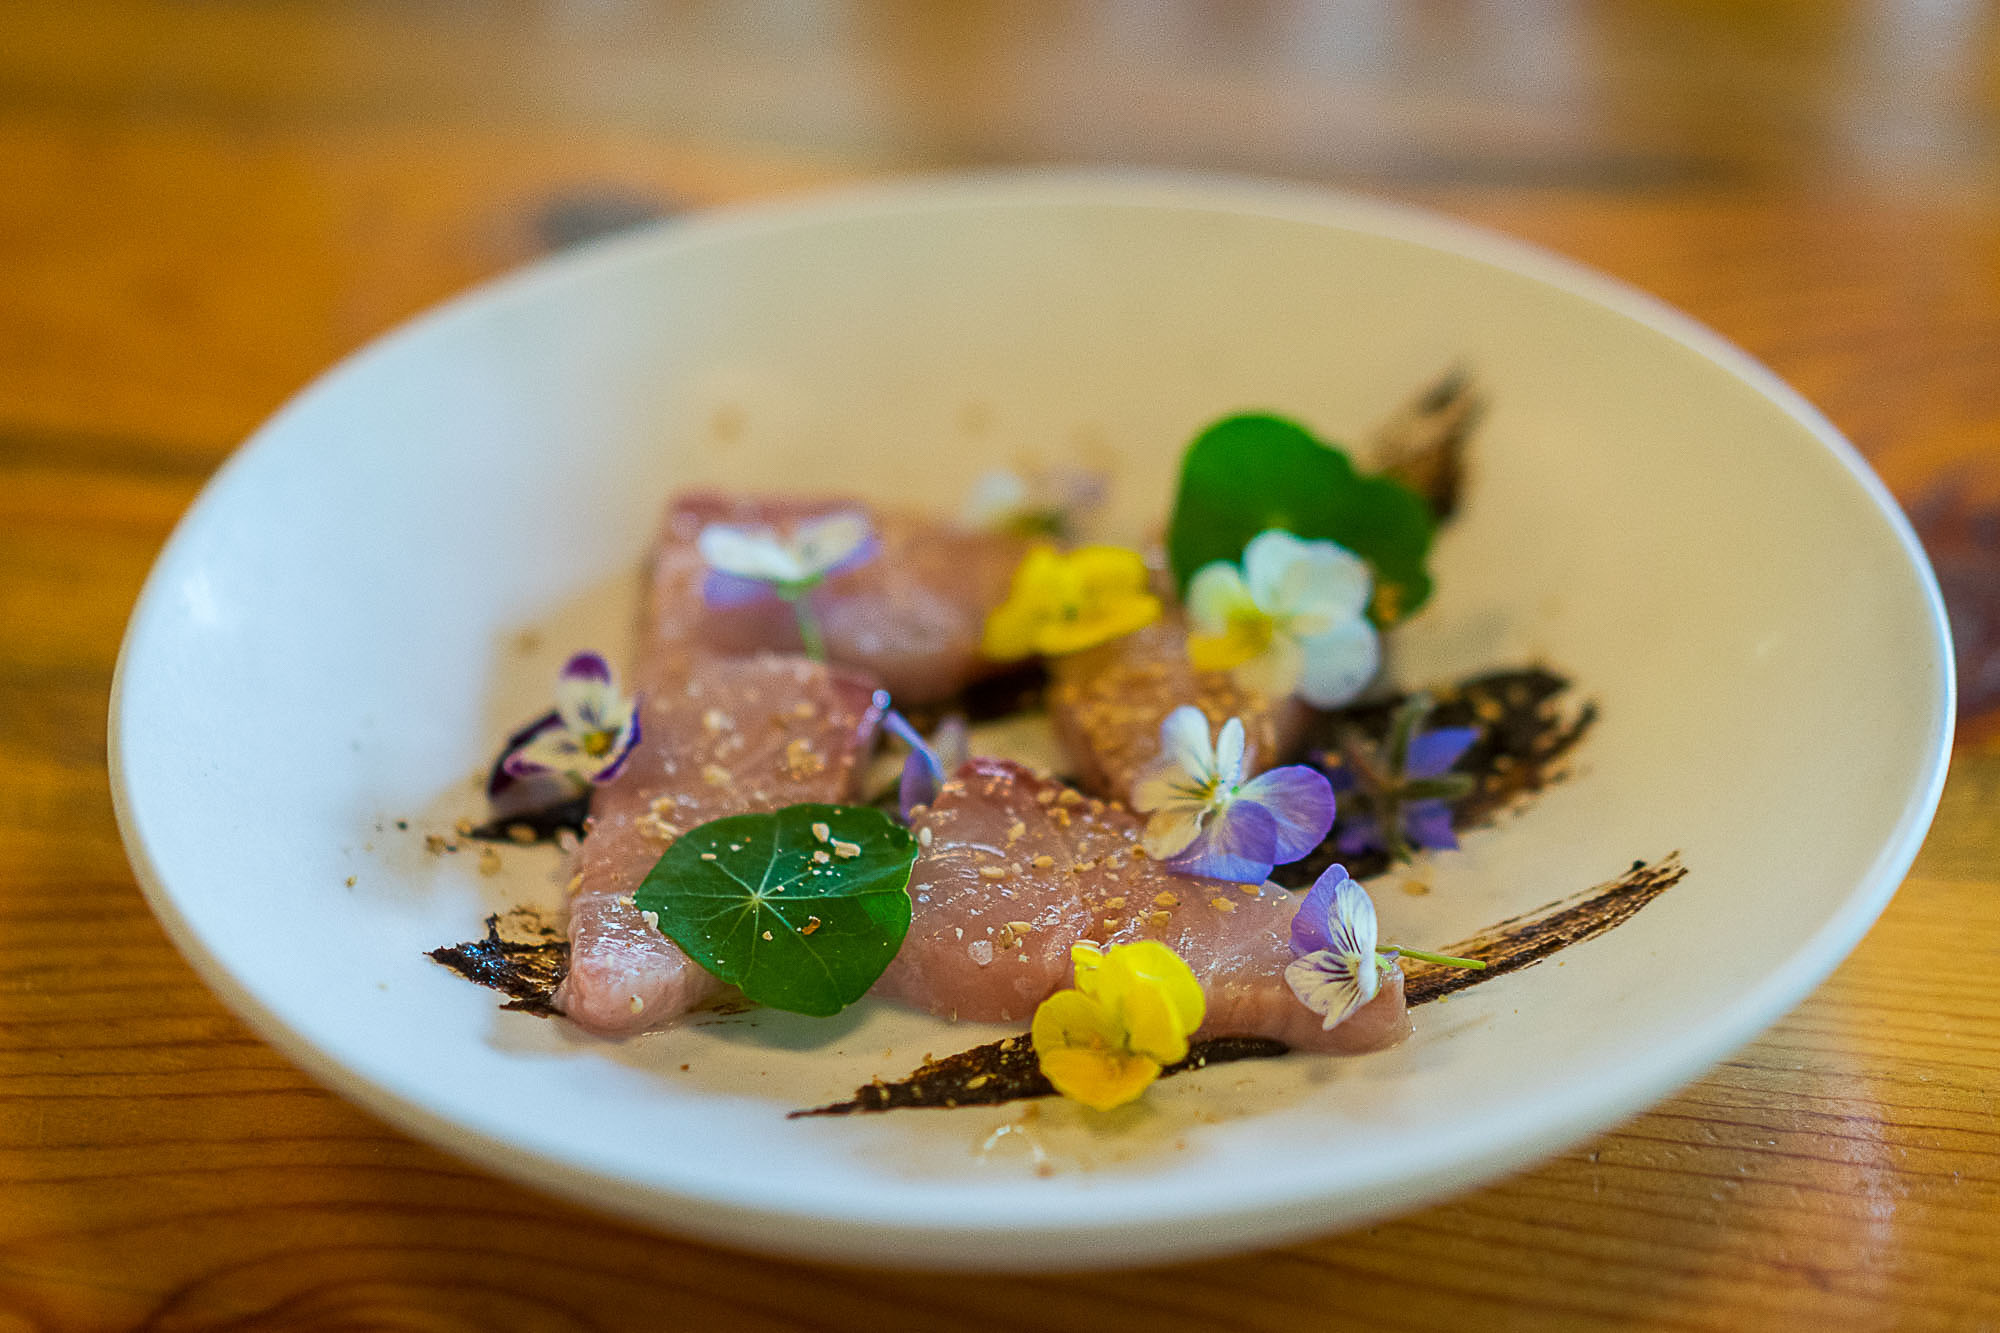 The Basta Crudo Plate. Market fresh fish, edible flowers from the garden.